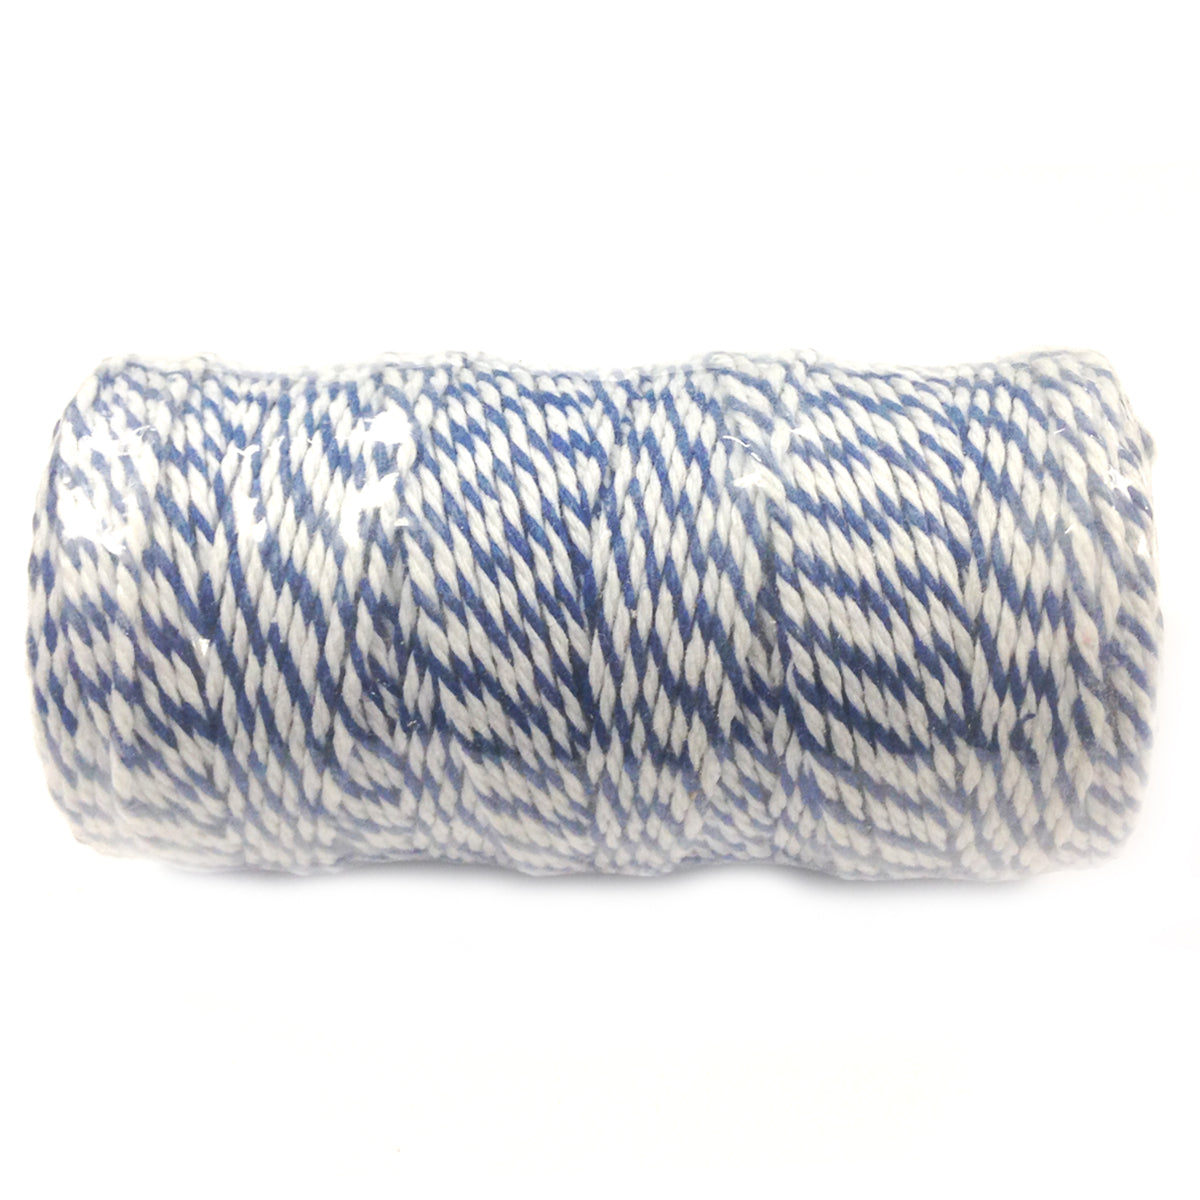 Wrapables Cotton Baker's Twine 12ply 100 Yard